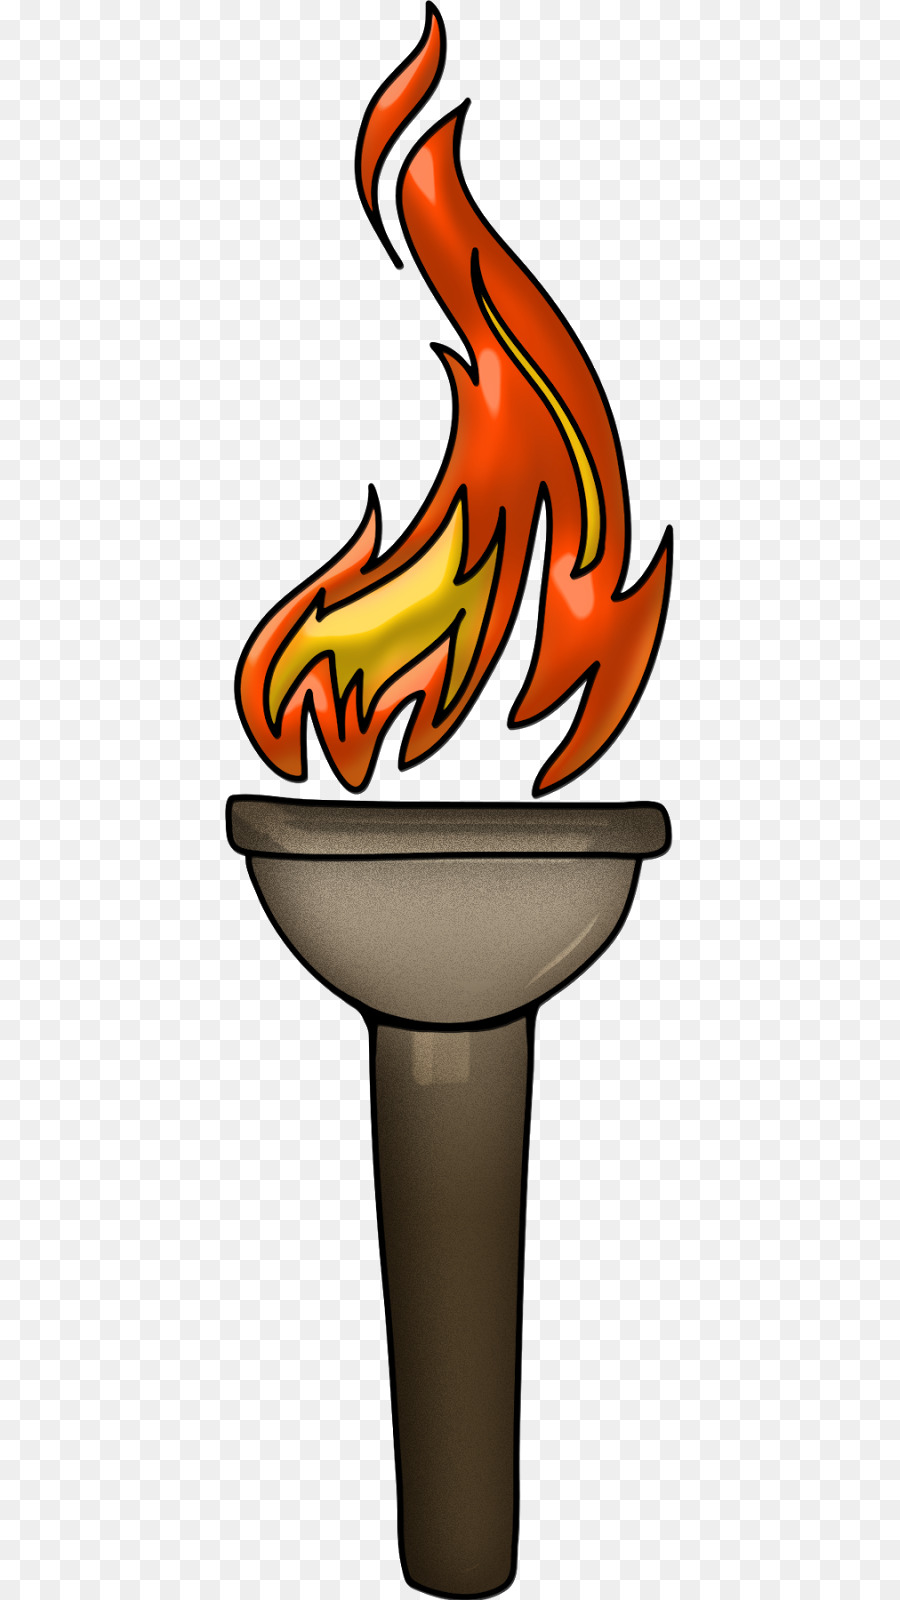 olympic games 2018 winter olympics torch relay clip art torch rh kisspng com olympic torch runner clipart olympic torch images 2012 clipart